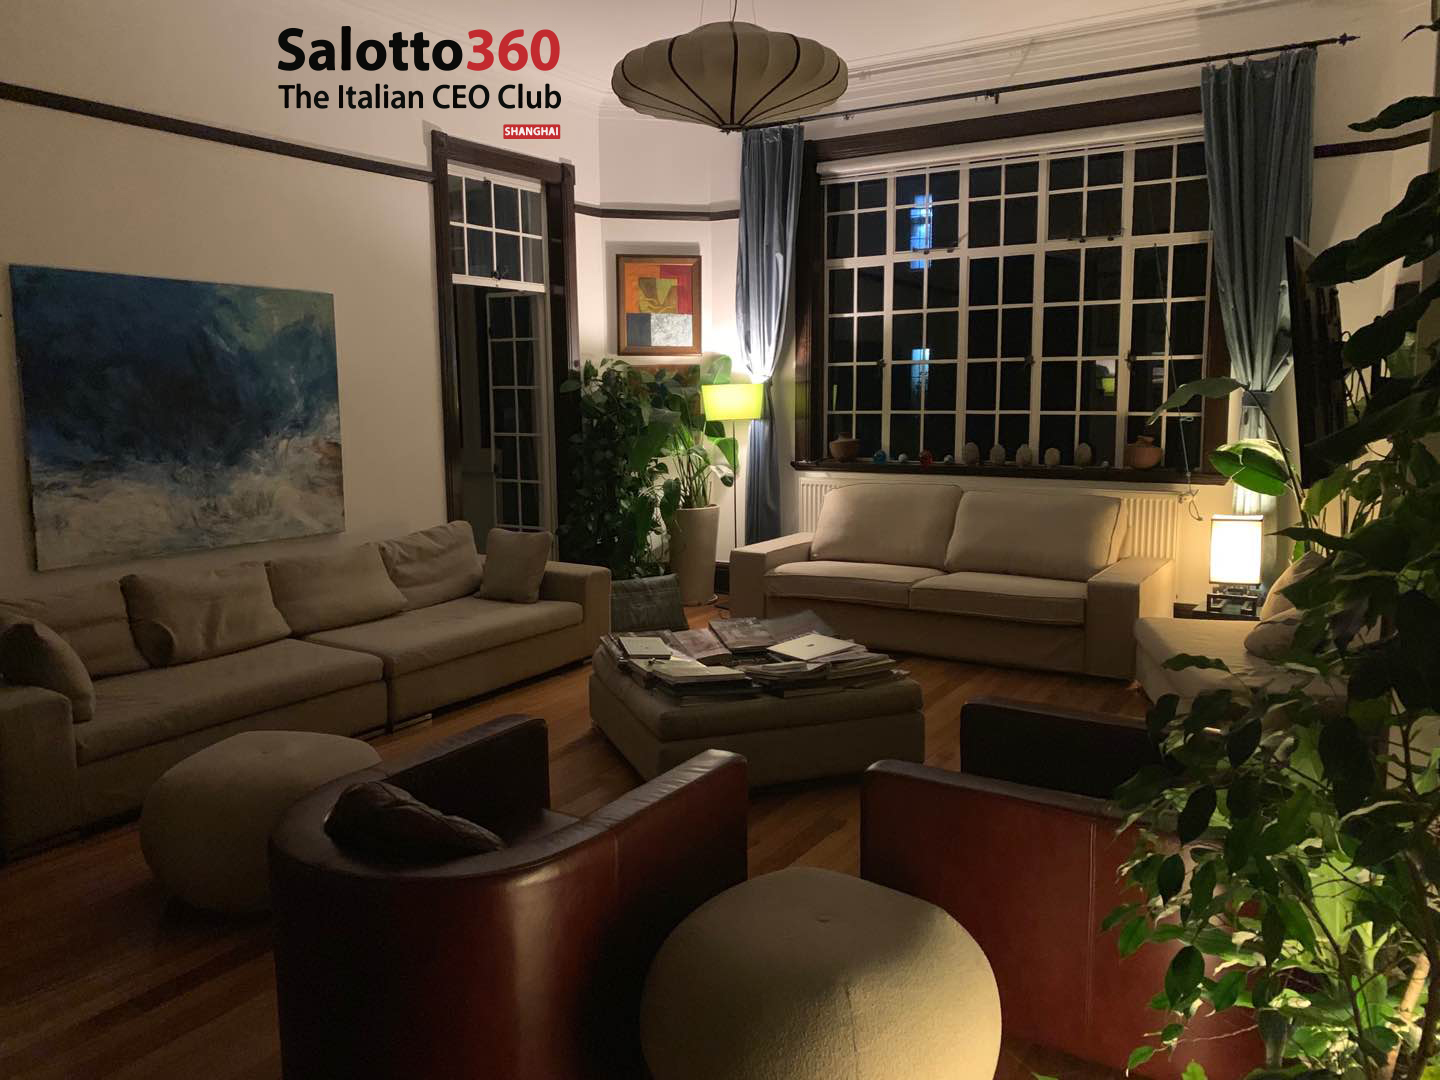 July 2019 – Barbatelli & Partners and its team organized Salotto 360's second event.